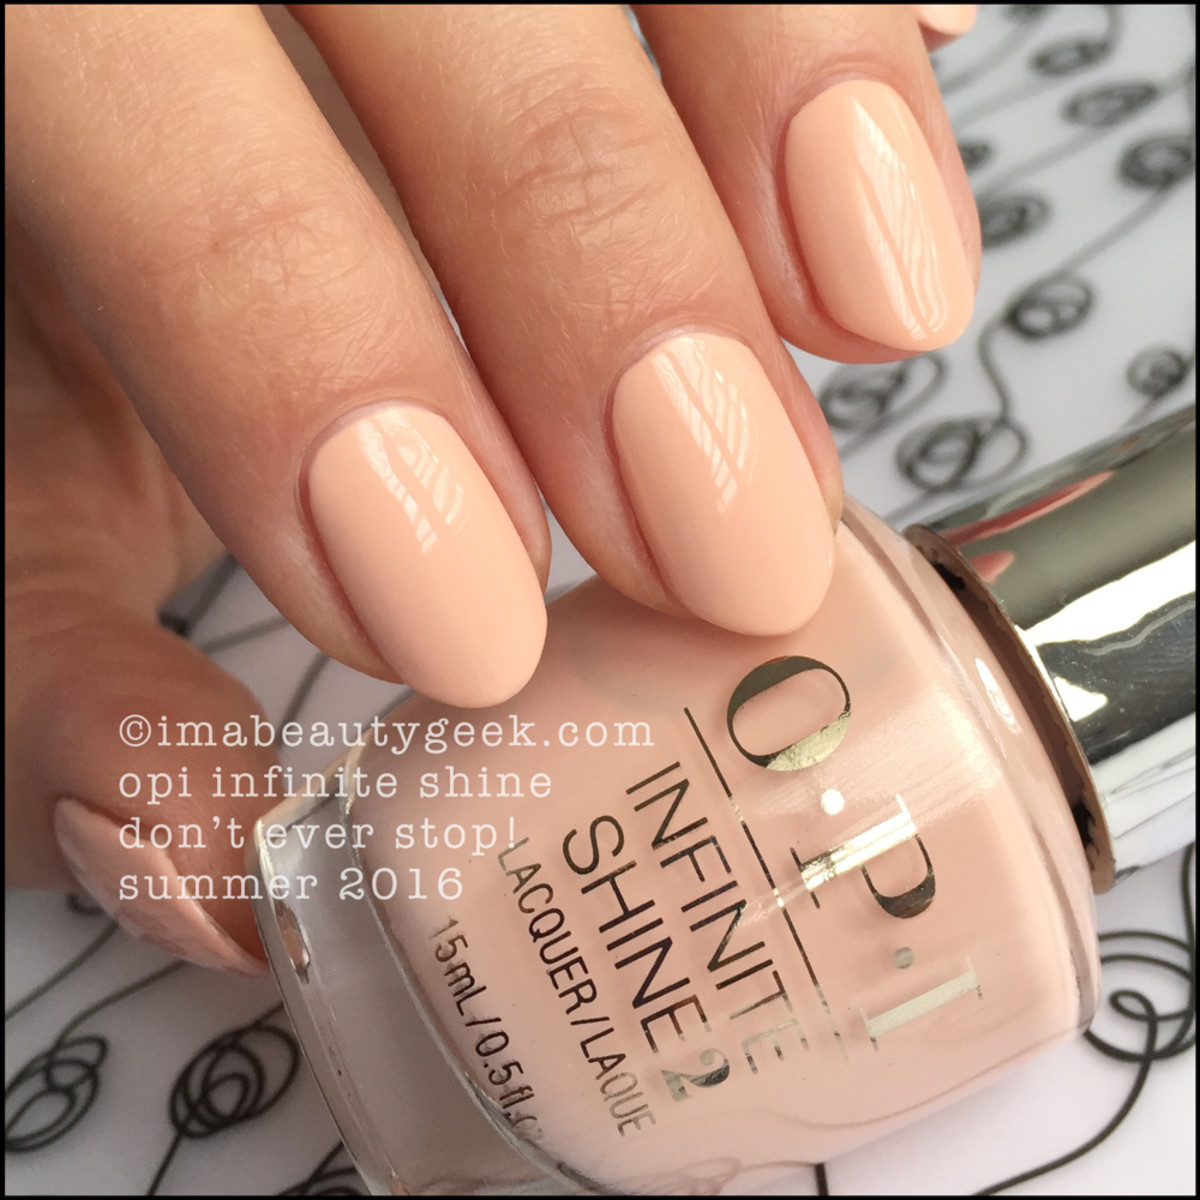 OPI Infinite Shine Summer 2016 Collection Swatches_OPI IS Dont Ever Stop Neutrals